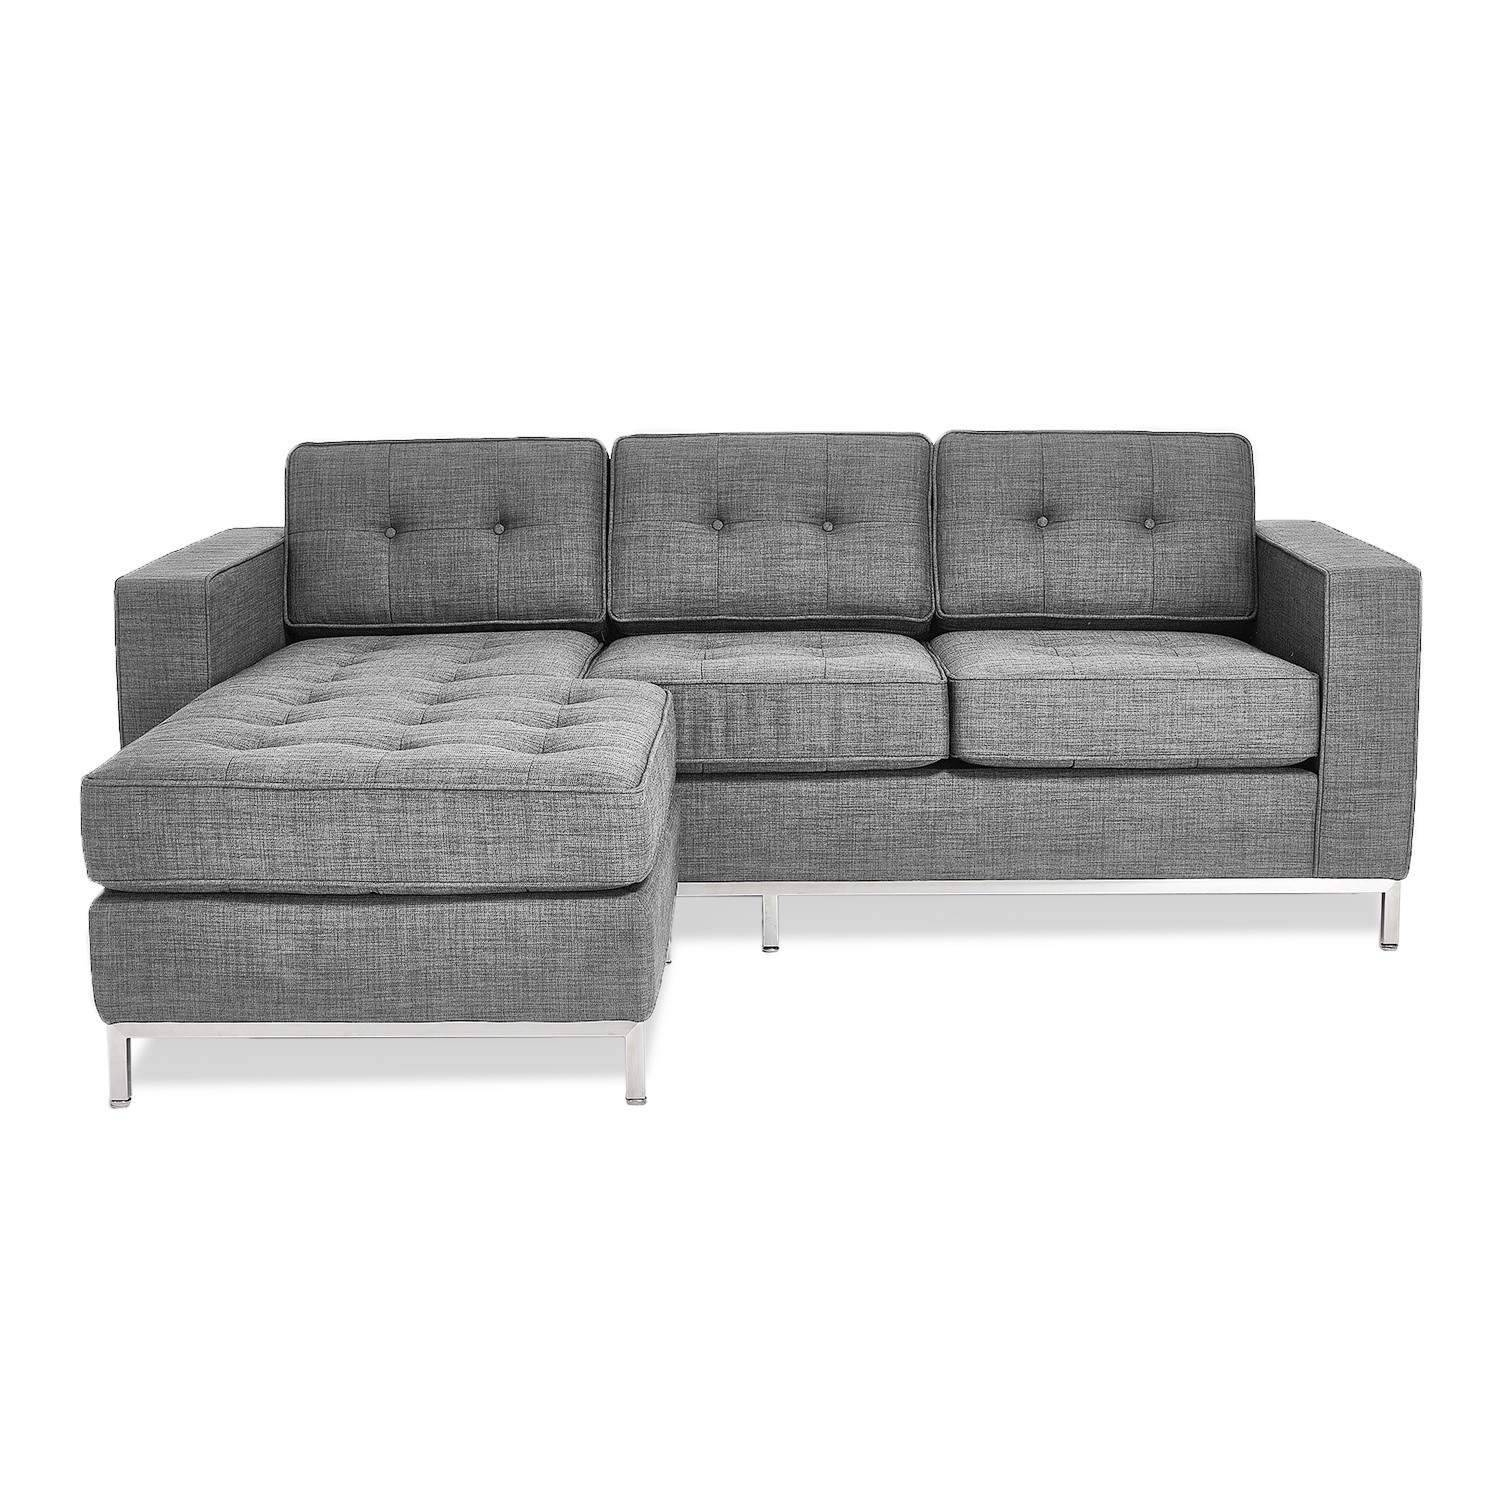 Gus* Modern Jane Loft Bi-Sectional – Abc Carpet & Home with regard to Jane Bi Sectional Sofa (Image 12 of 30)